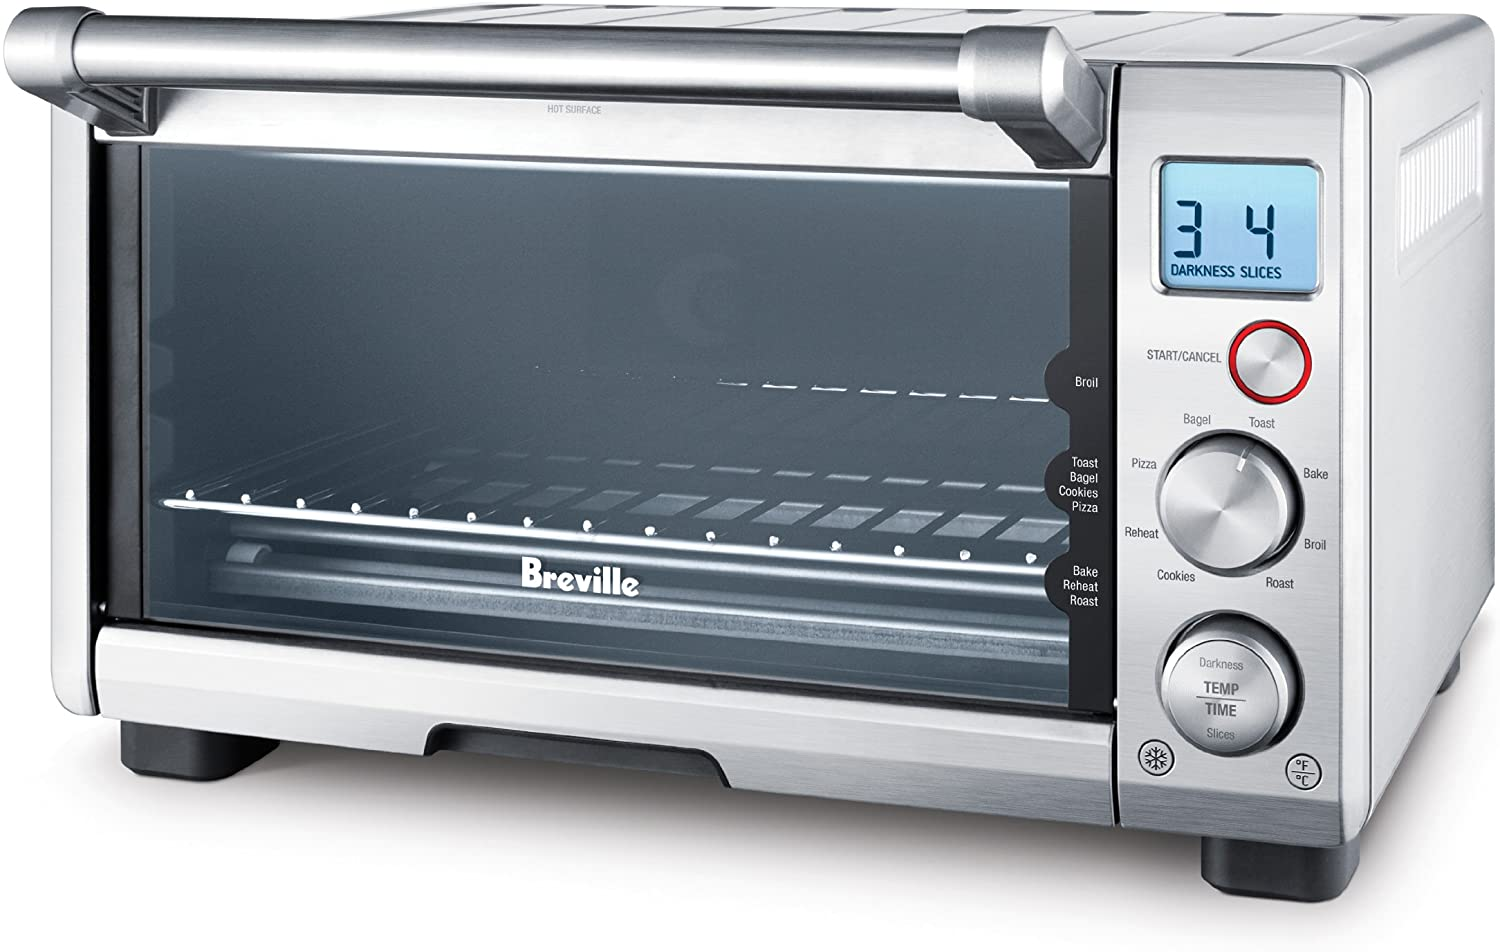 Compact Smart Oven by Breville